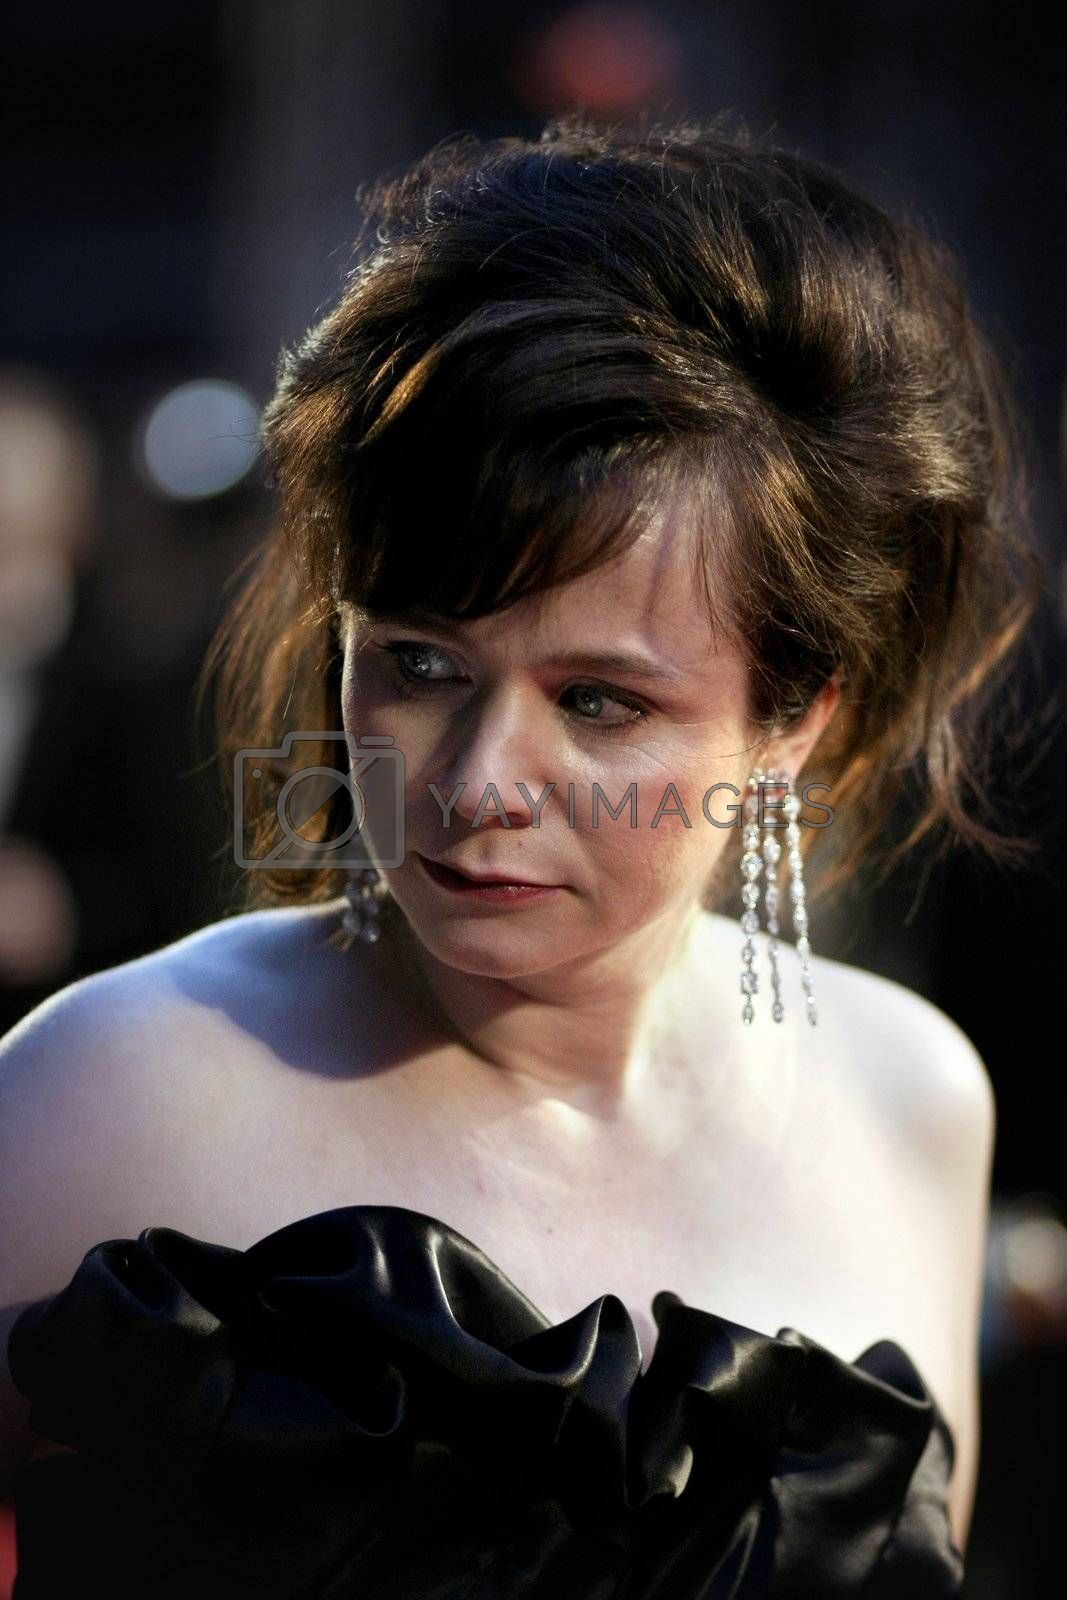 Actress Emily Watson arrives at the Orange British Academy Film Awards (BAFTAs) at the Royal Opera House on February 11, 2007 in London, England.